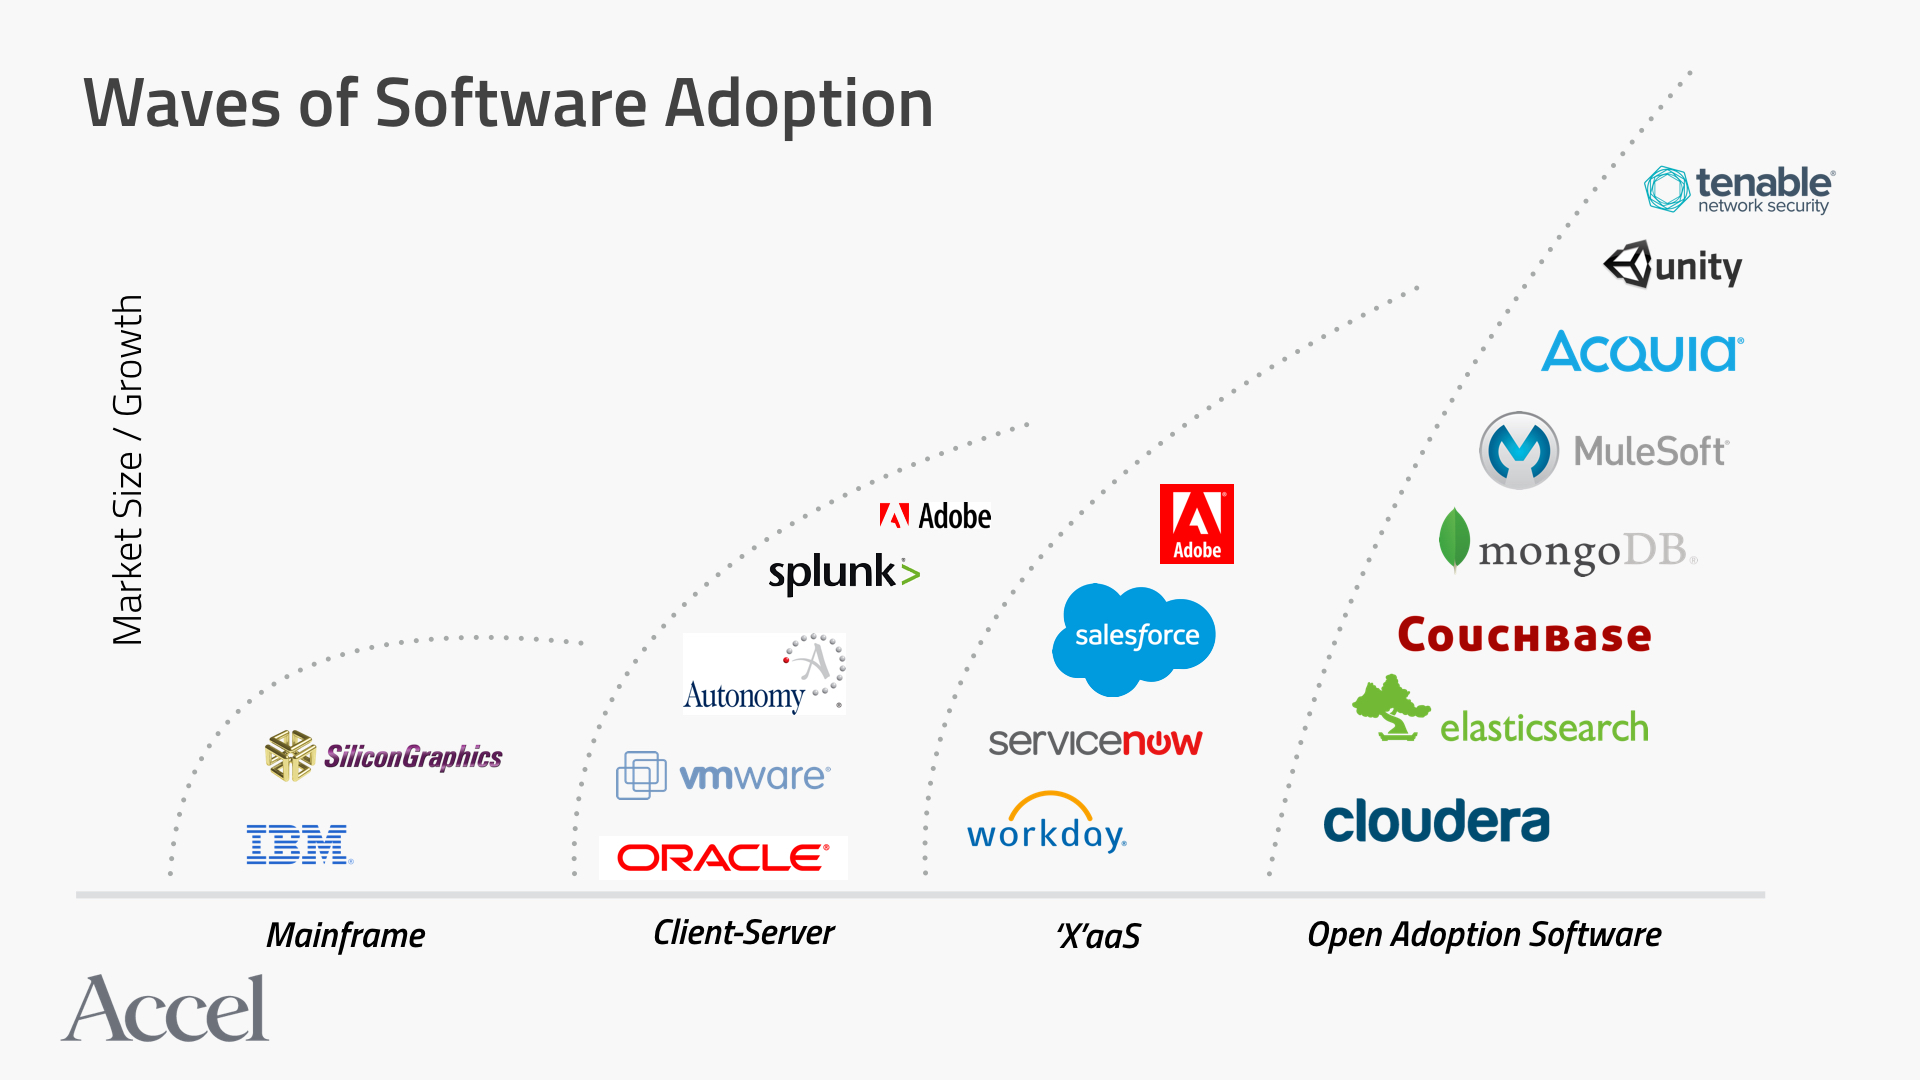 Waves of software adoption